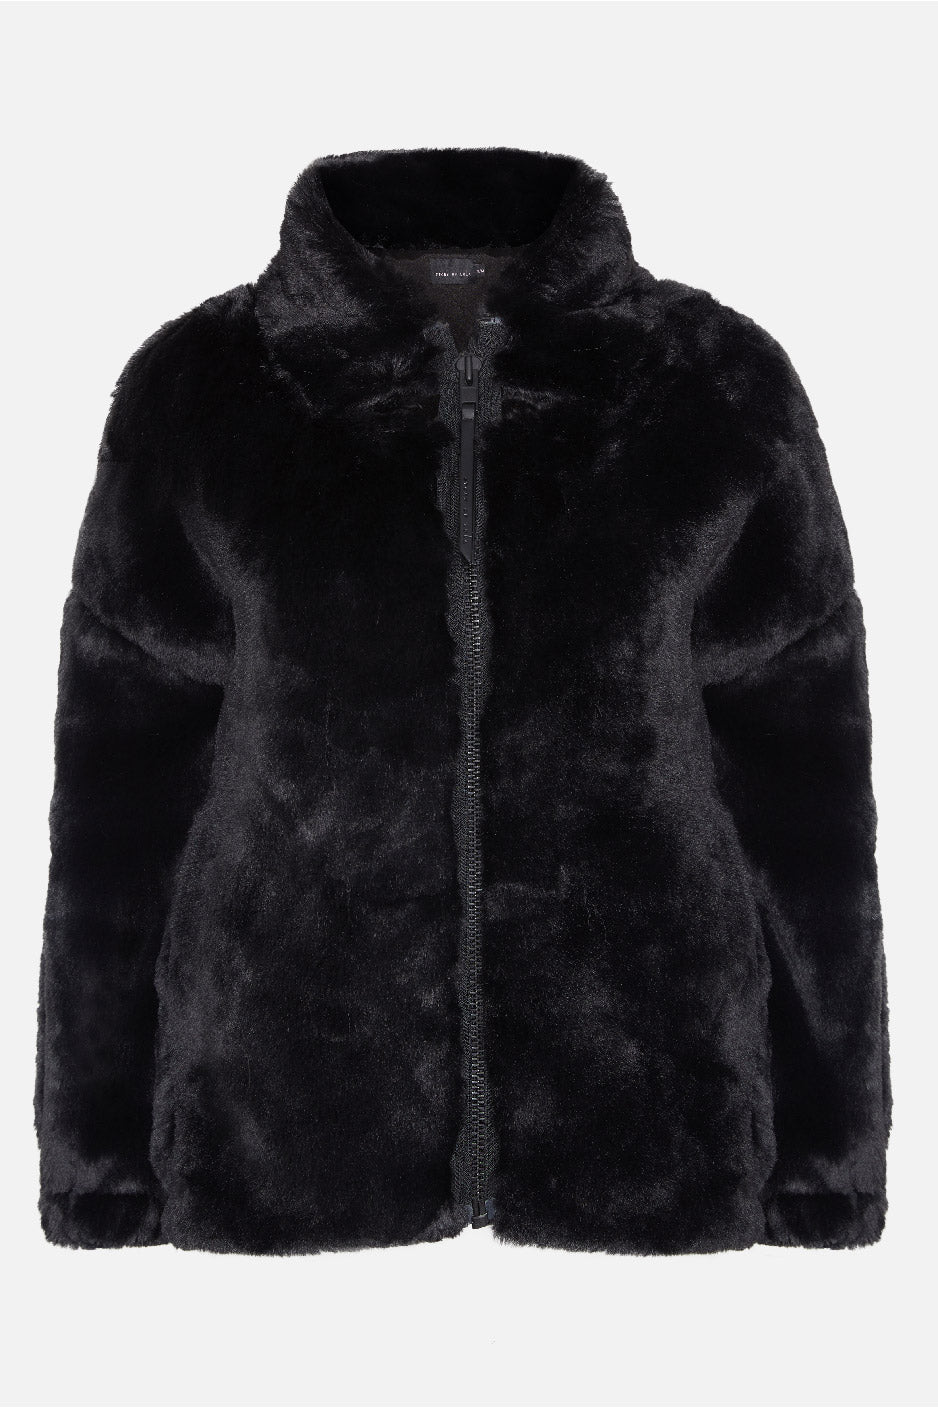 Cozy Luxurious Classic Zip Through Bomber